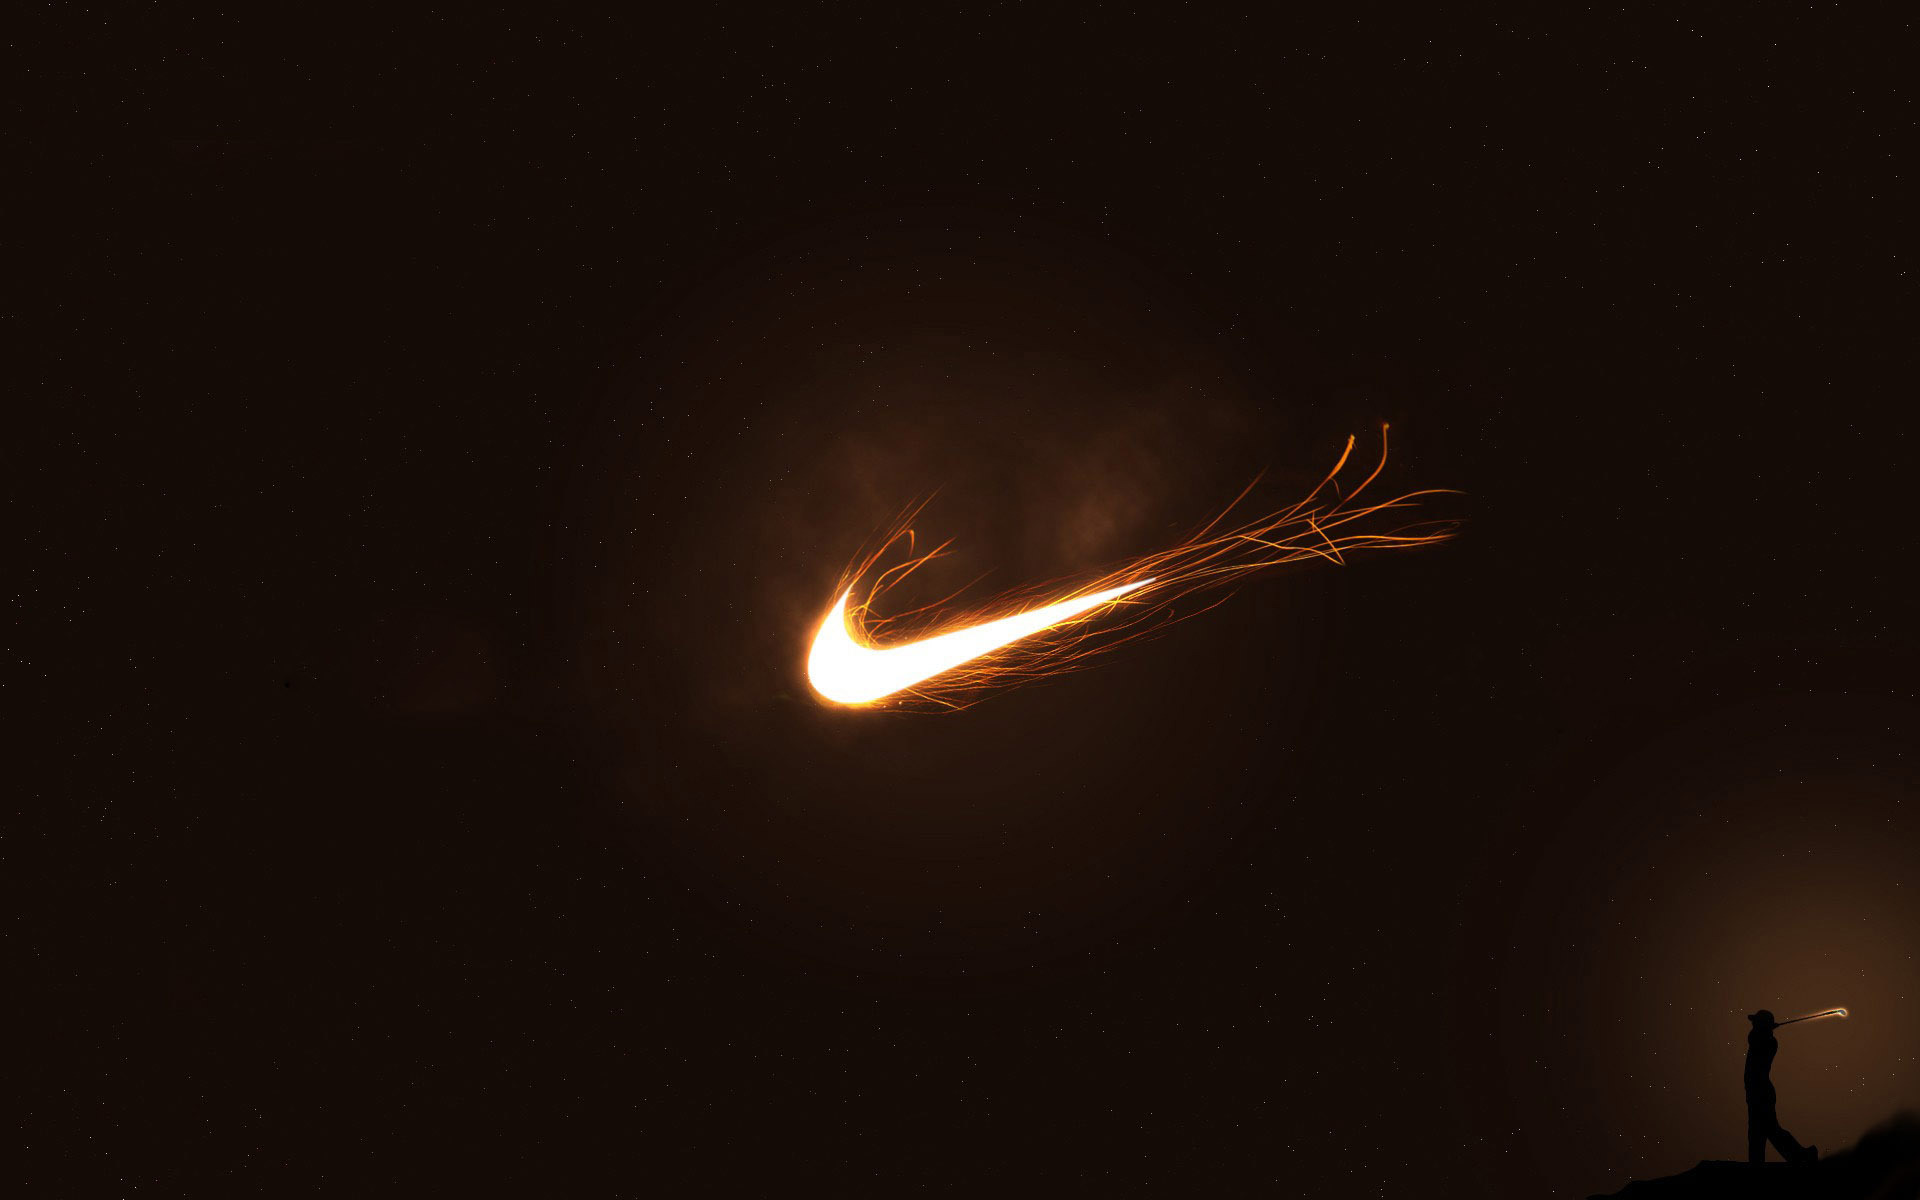 Nike Wallpaper Hd 1080p 3